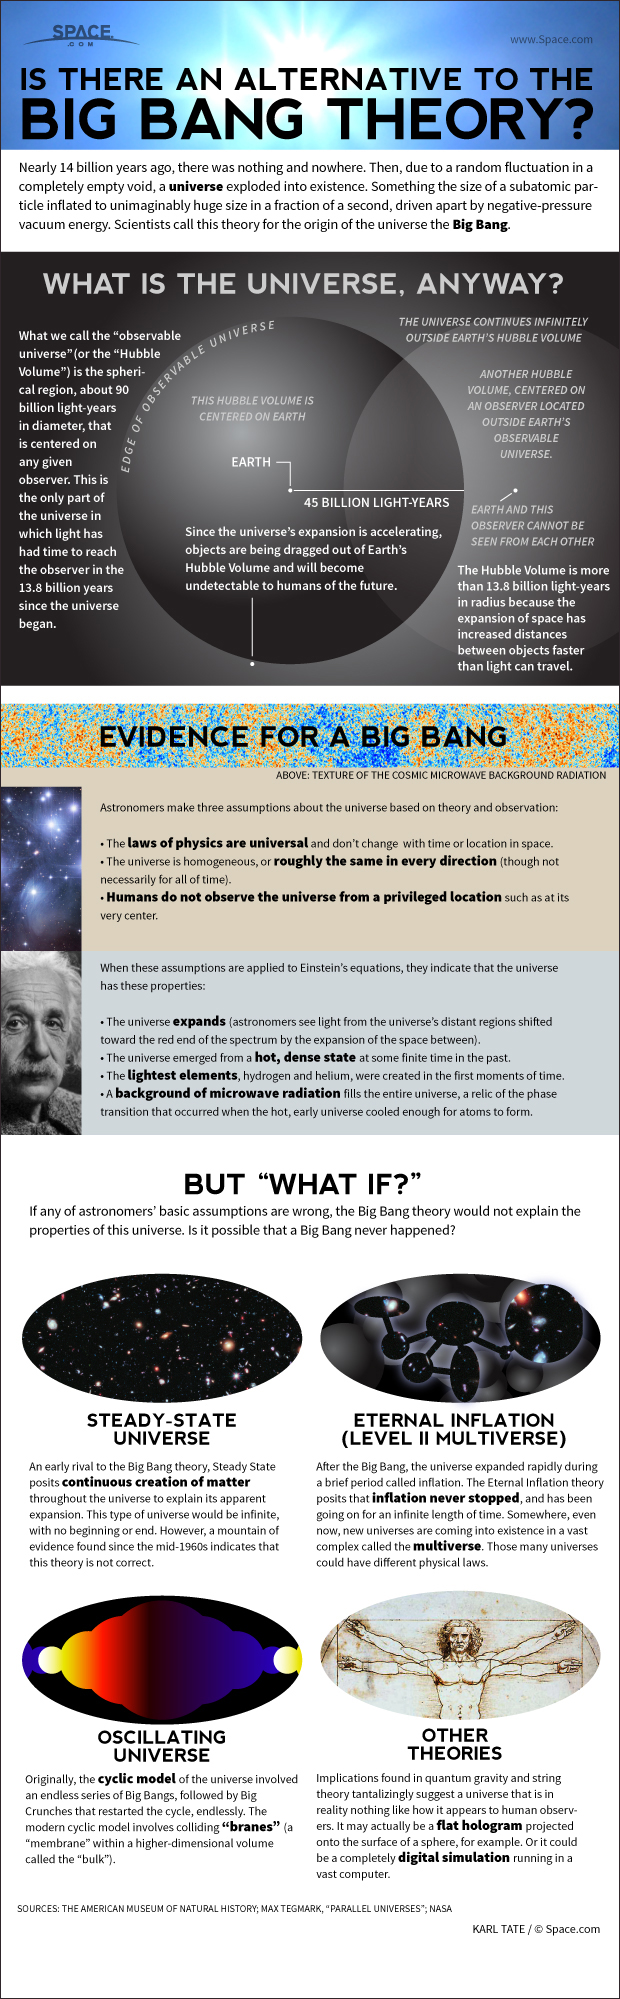 'Big Bang' Doesn't Necessarily Mean Universe's Start